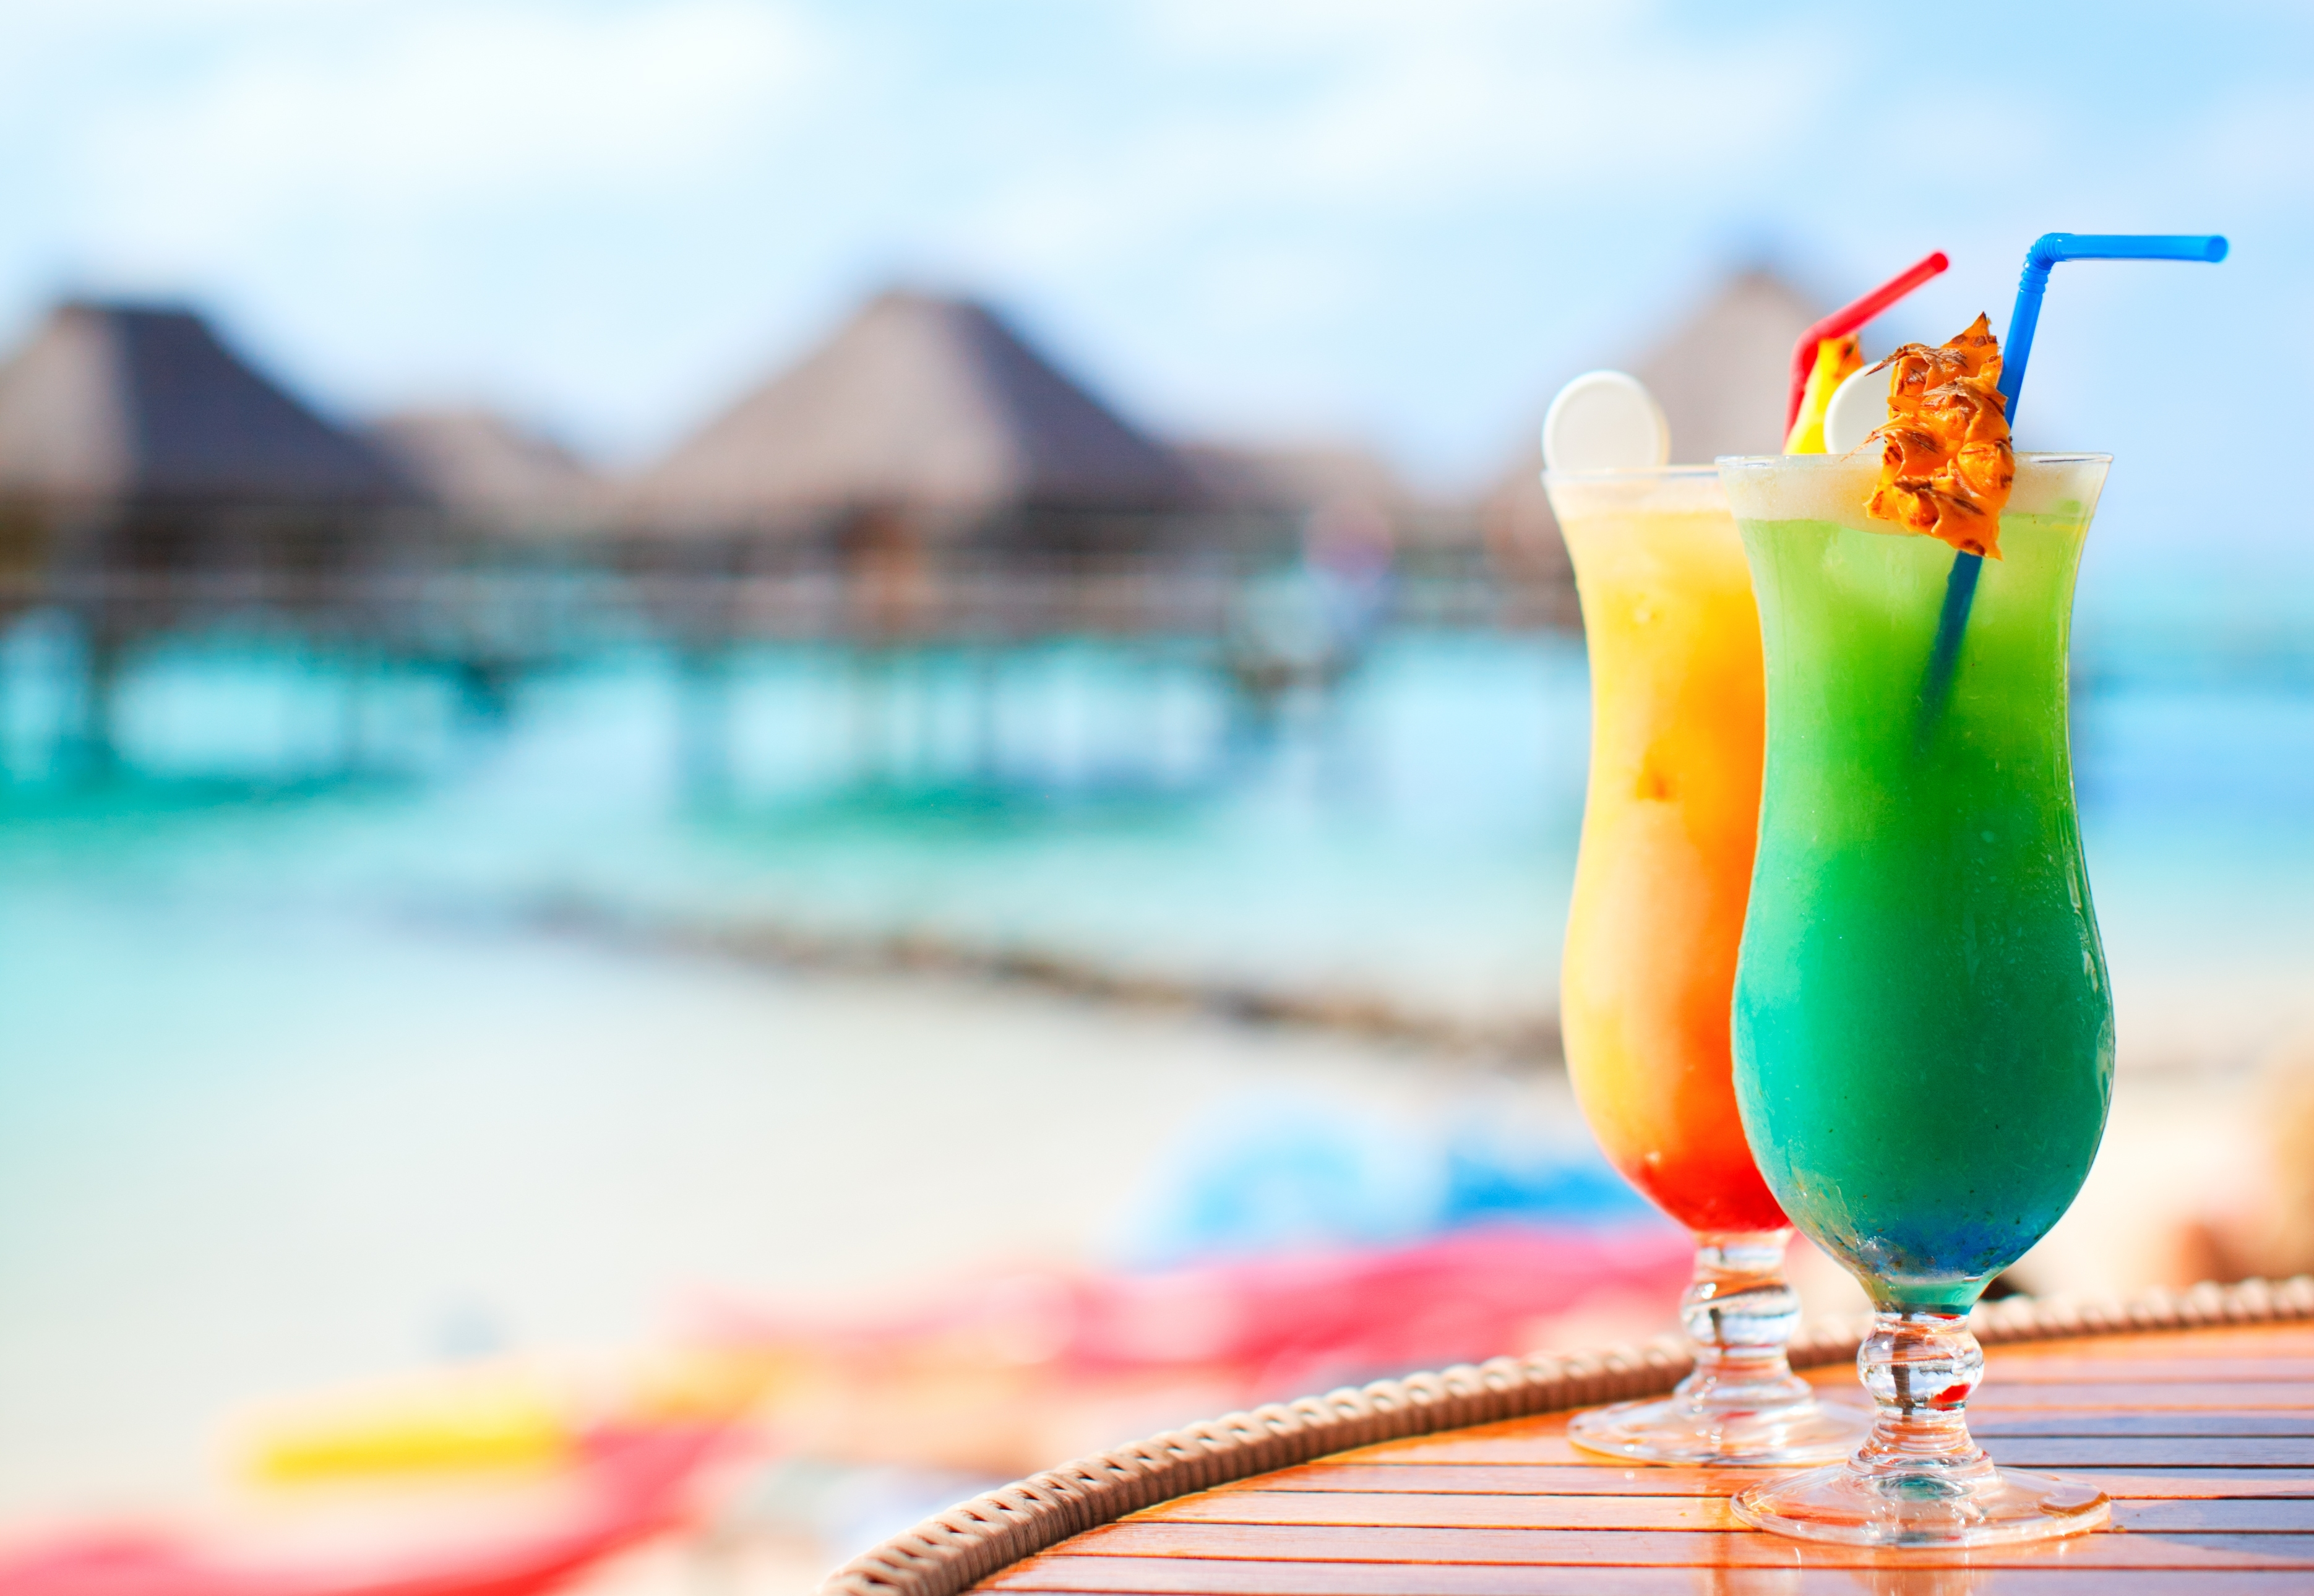 Download Wallpaper Table Cocktails Beach Tube